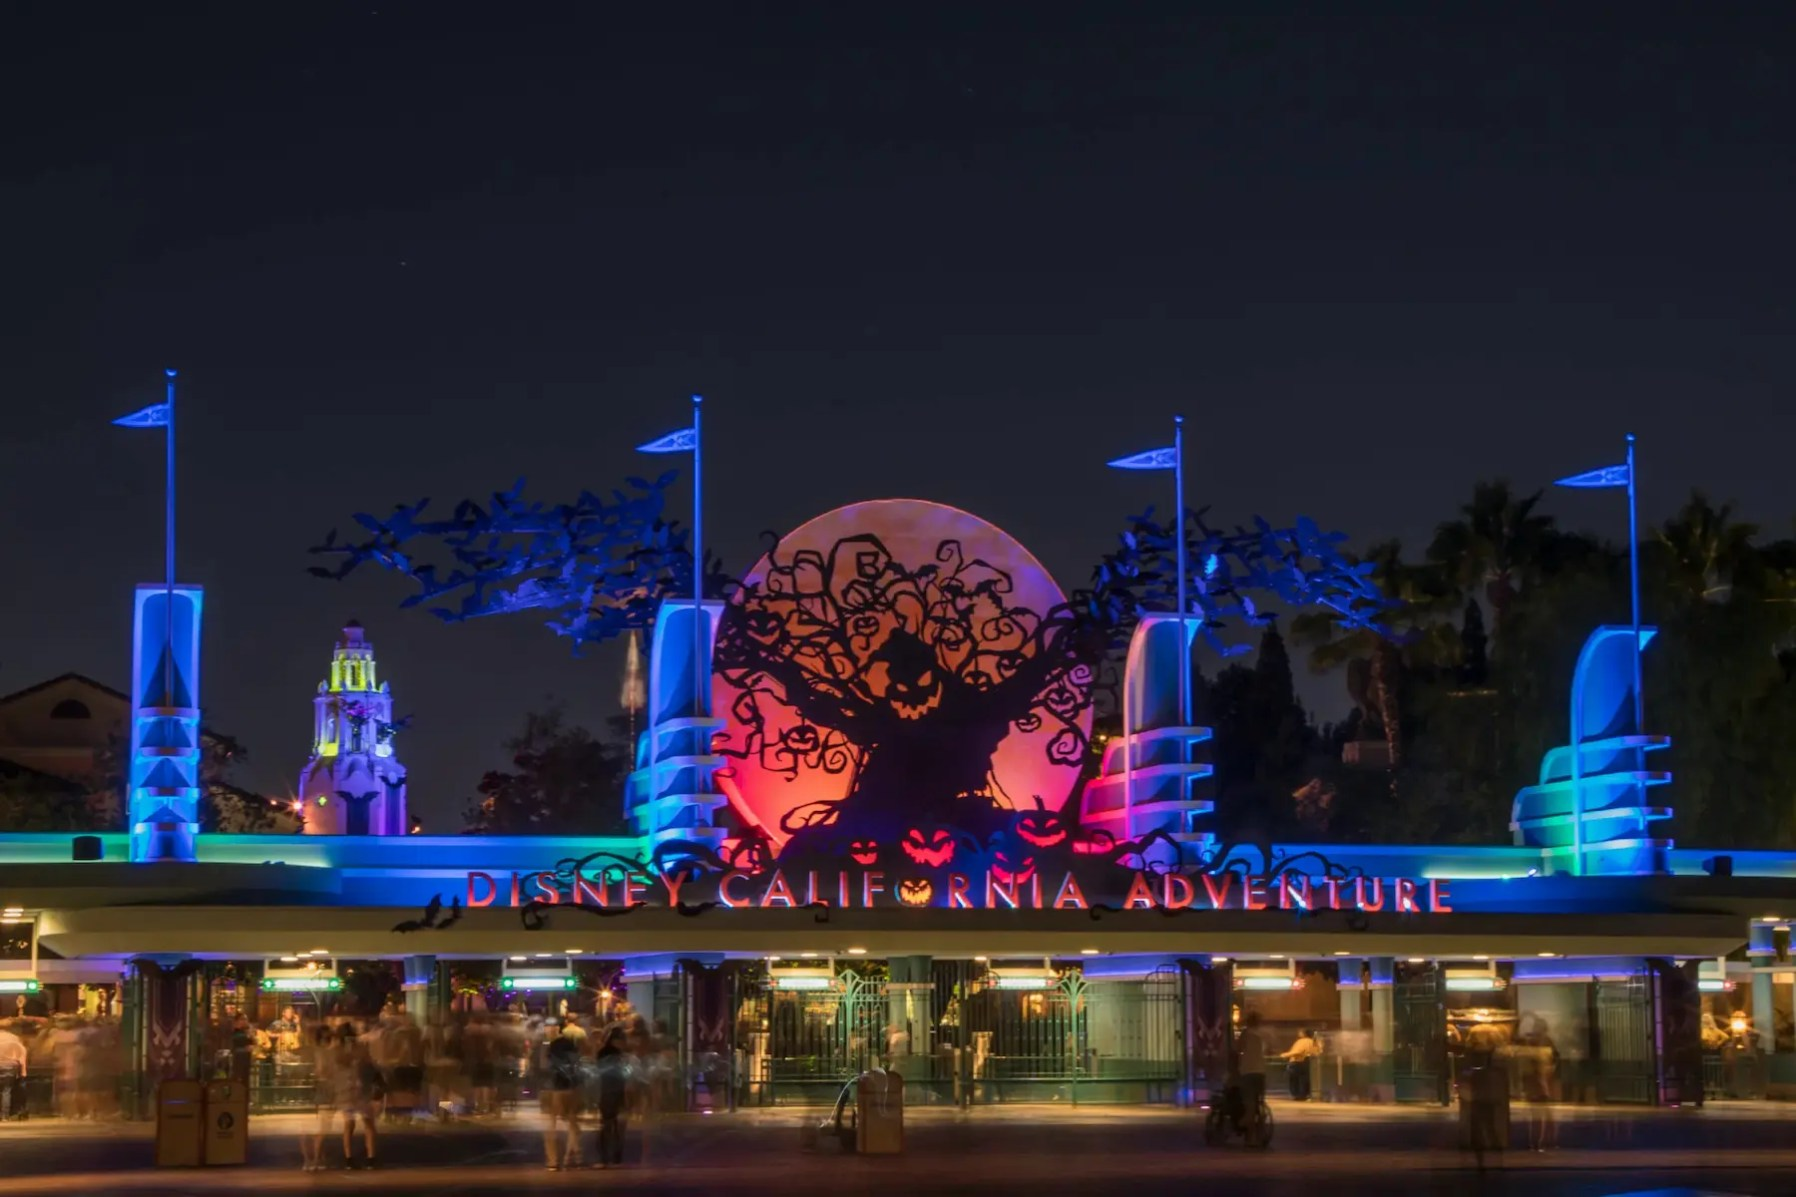 On select nights beginning Sept. 9, through October 31, 2021, the separate-ticket, after-park hours event Oogie Boogie Bash – A Disney Halloween Party will add to the spooky fun during Halloween Time at the Disneyland Resort. This limited-capacity event at Disney California Adventure Park features exclusive entertainment, character sightings, food and beverage and more. Kids and guests of all ages will enjoy donning their favorite Halloween costumes while taking in all the spook-tacular sights and trick-or-treating experiences. (Disneyland Resort)